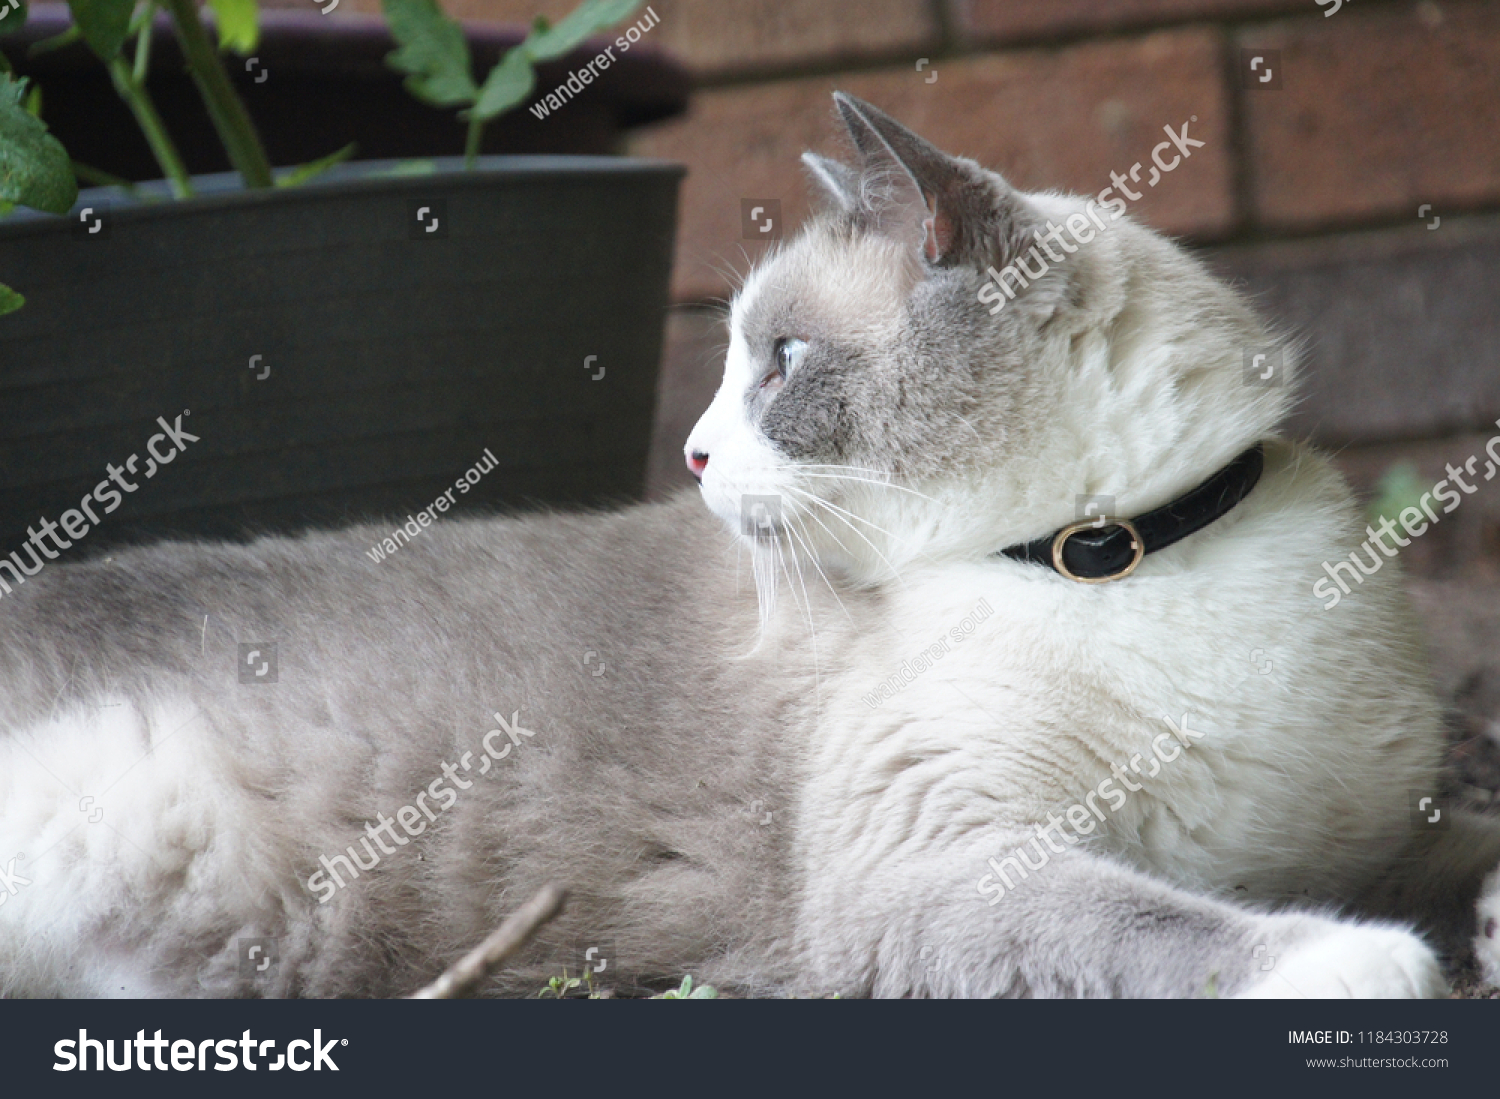 stock-photo-tintin-my-snowshoe-cat-1184303728.jpg